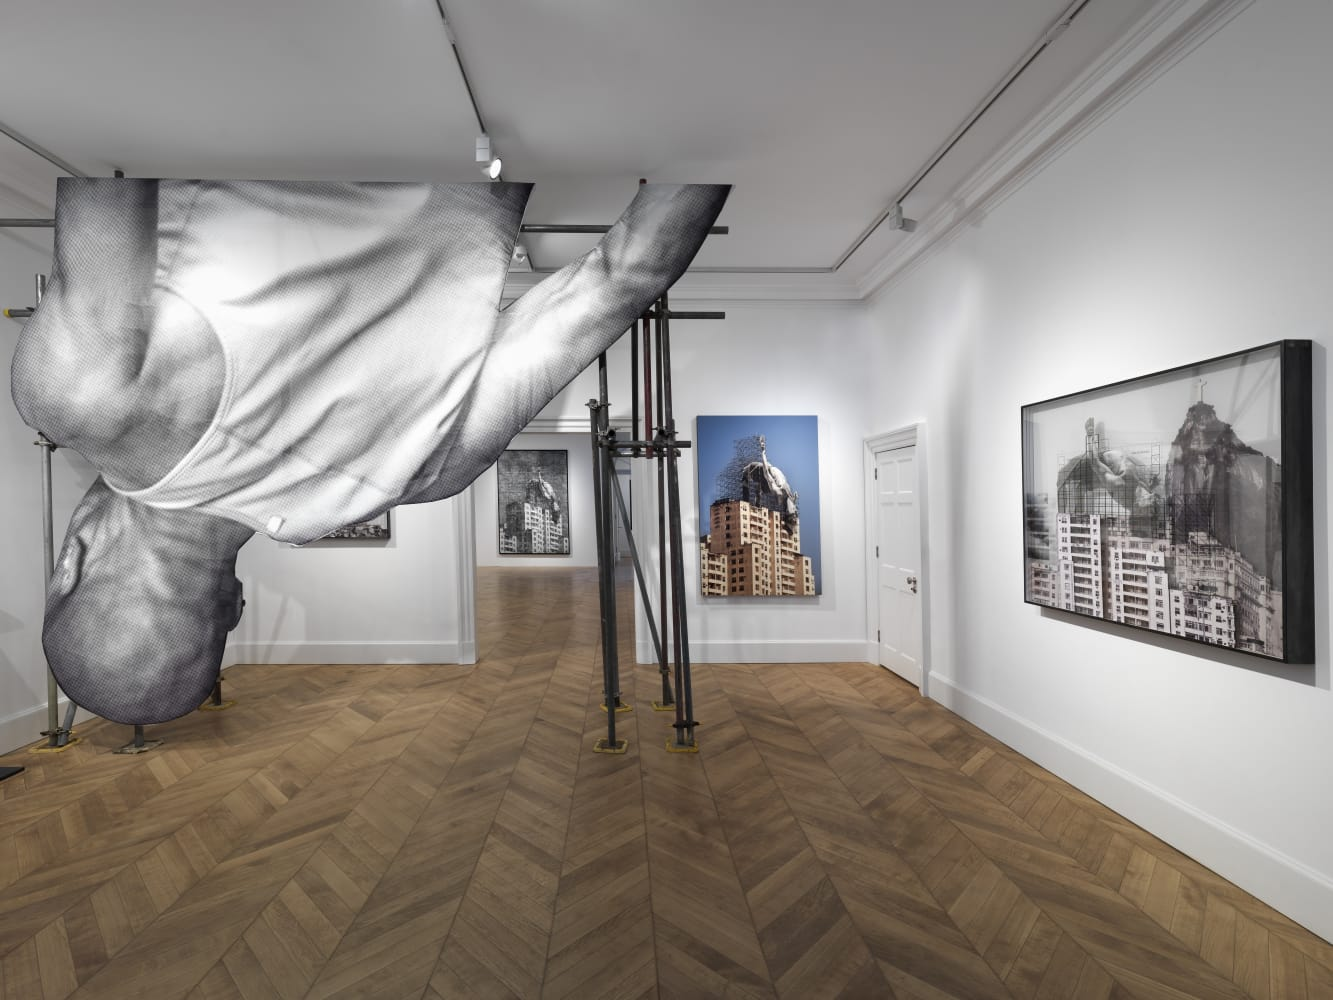 jr opens lazinc s new mayfair gallery with his exhibition giants